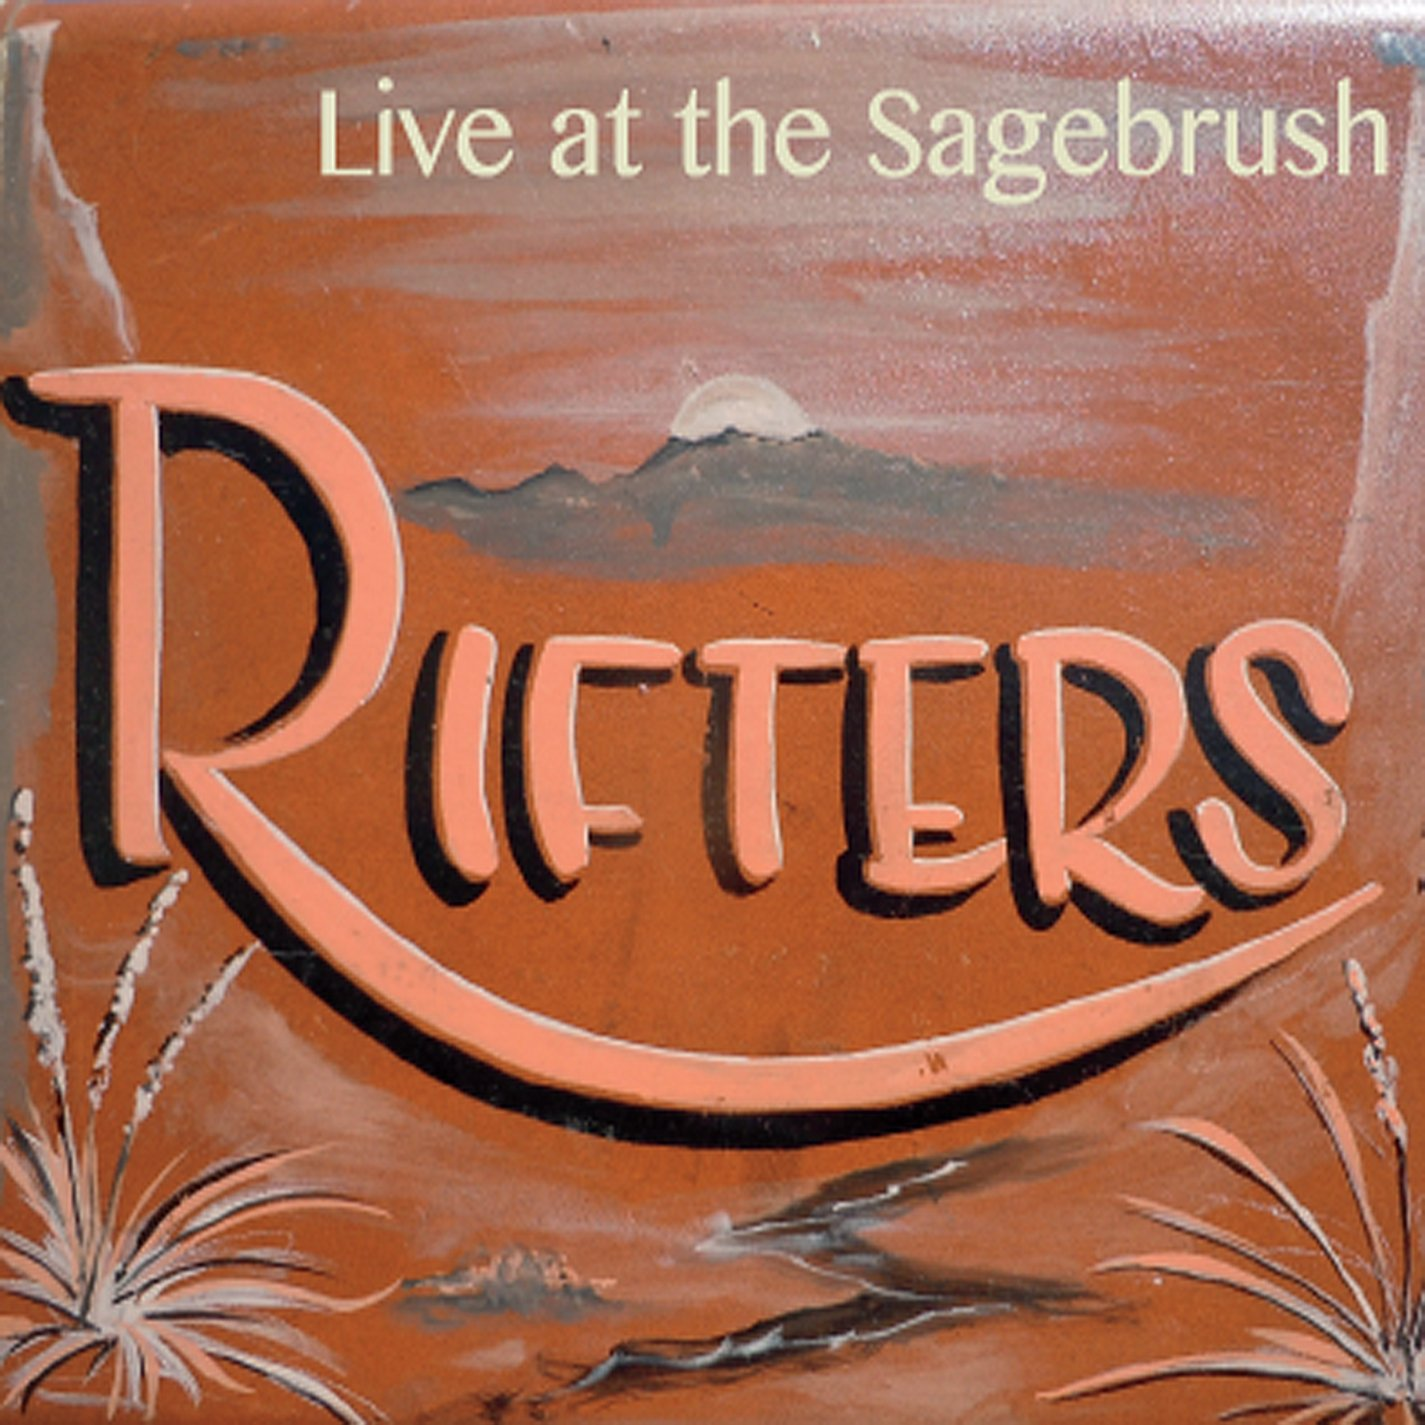 Live at the Sagebrush by CD Baby